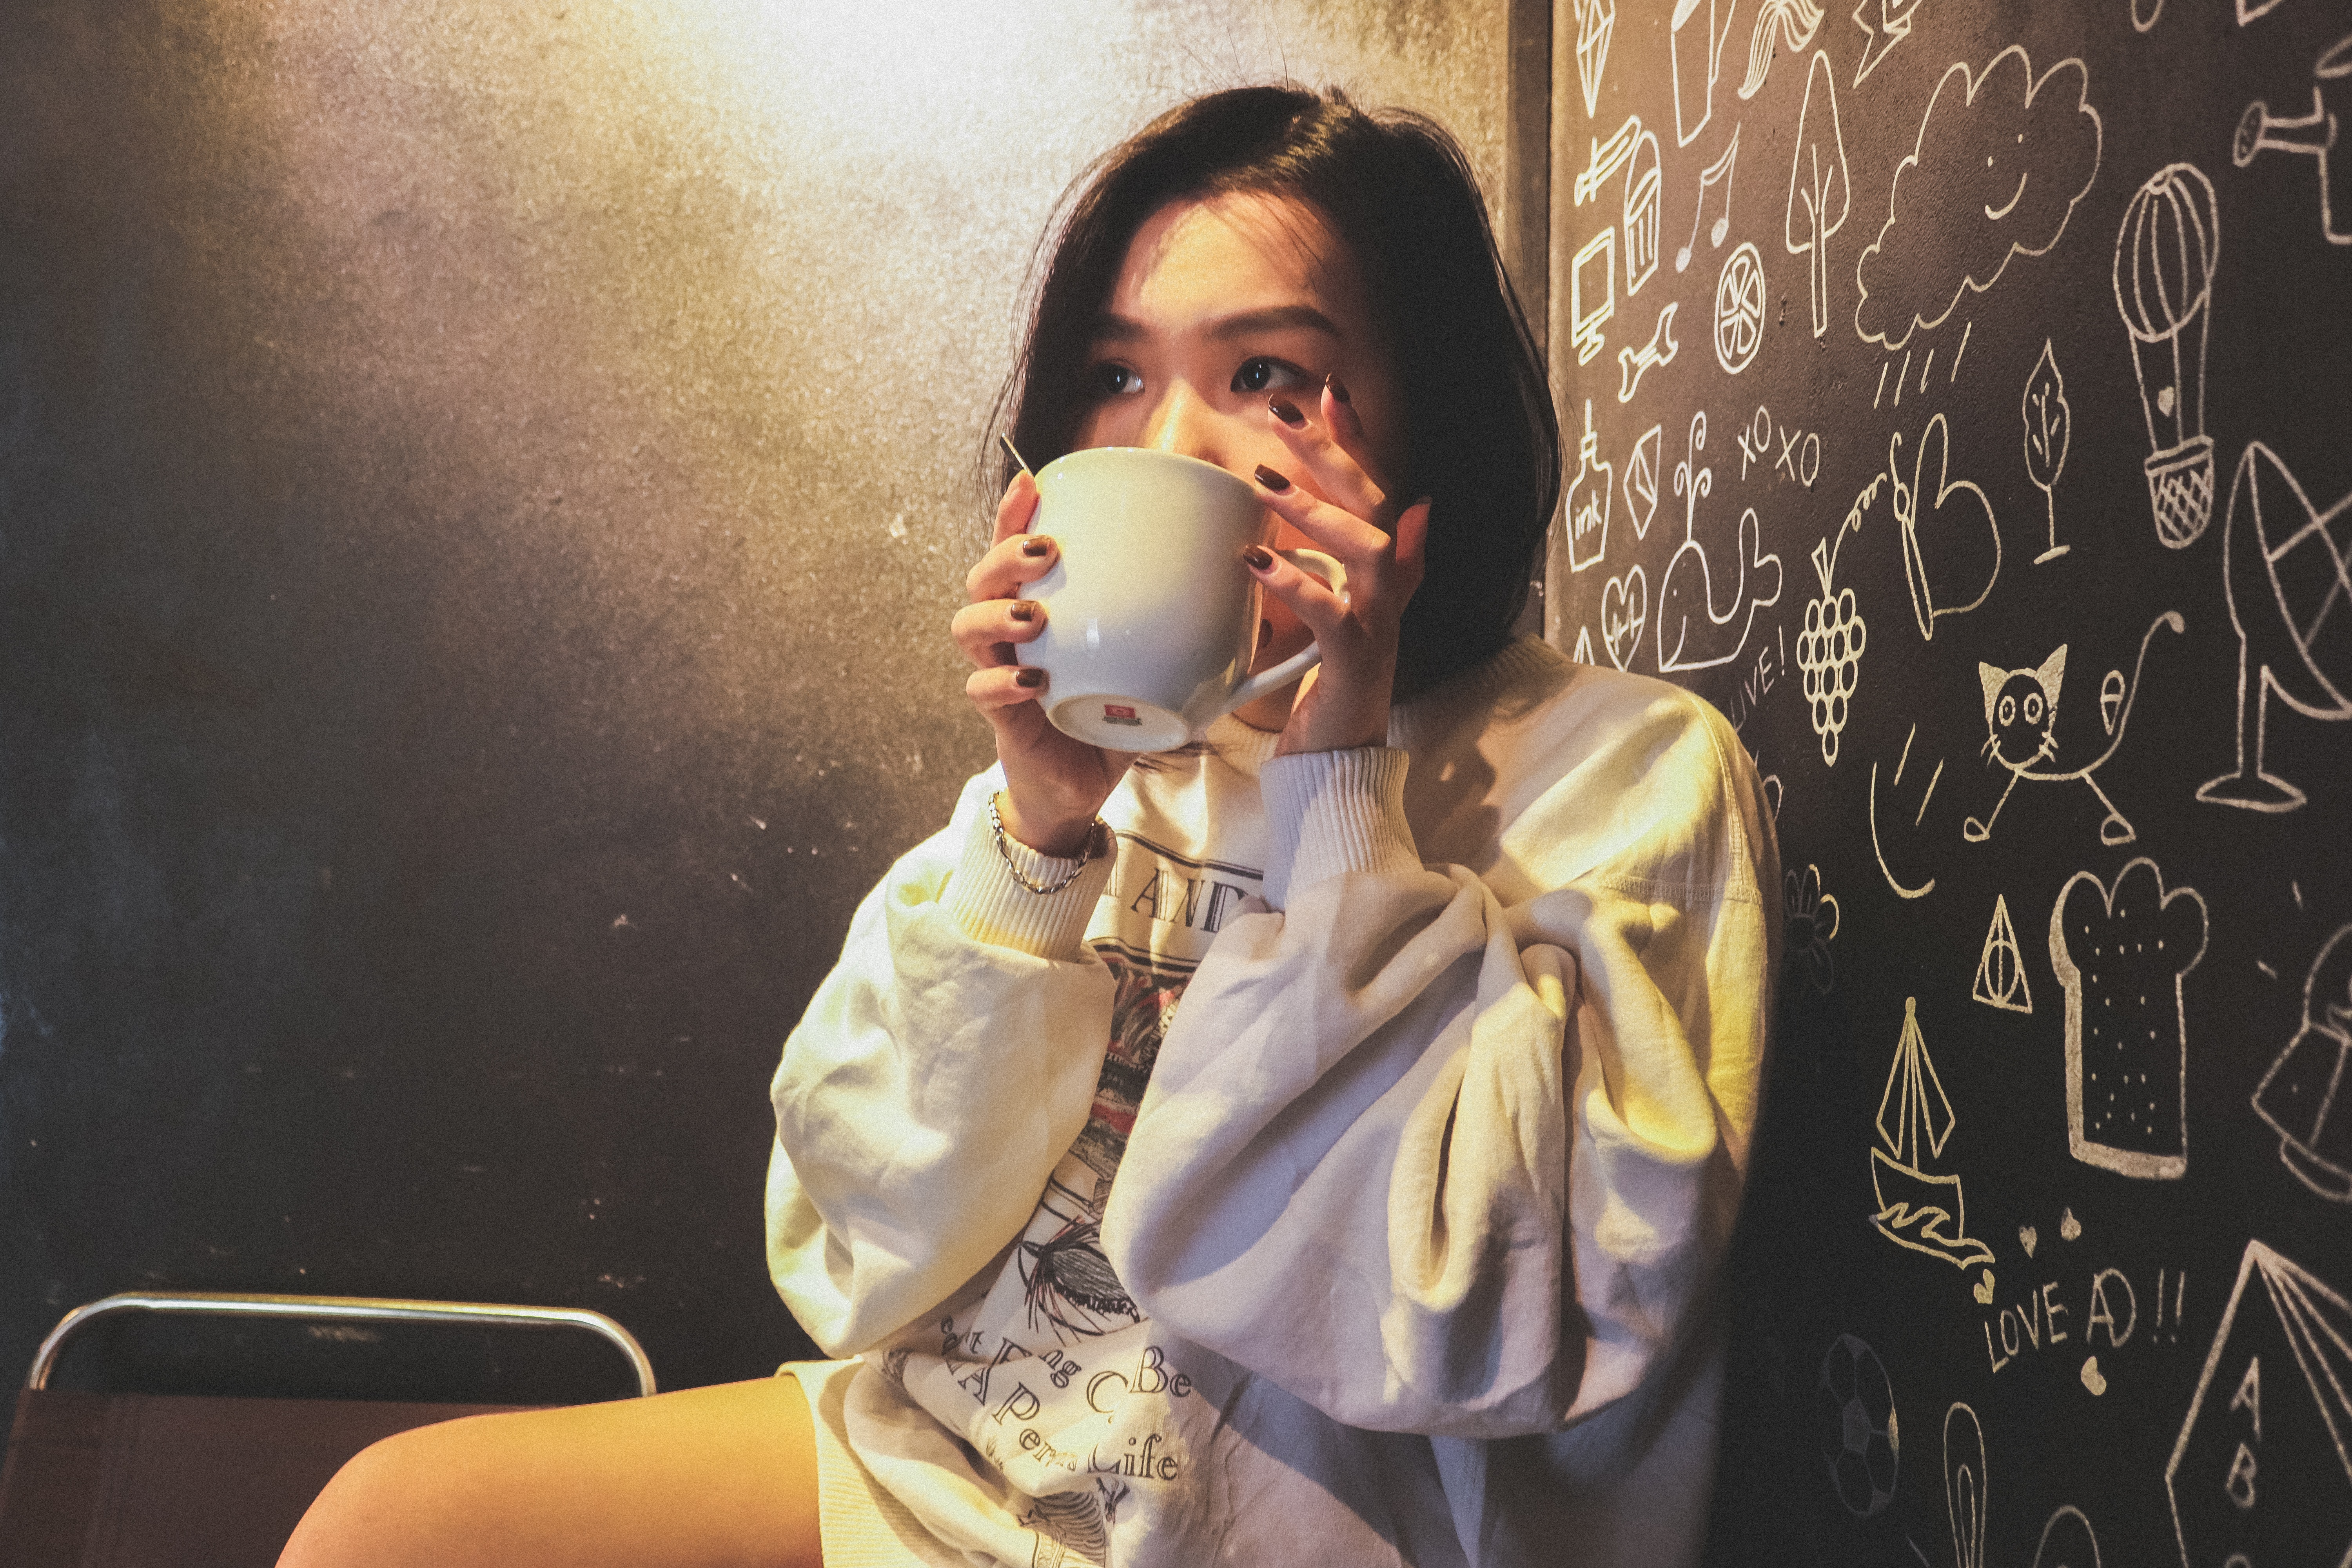 Woman Wearing White over Shirt Holding White Ceramic Mug Beside Black Printed Wall, Indoors, Young, Woman, Wear, HQ Photo